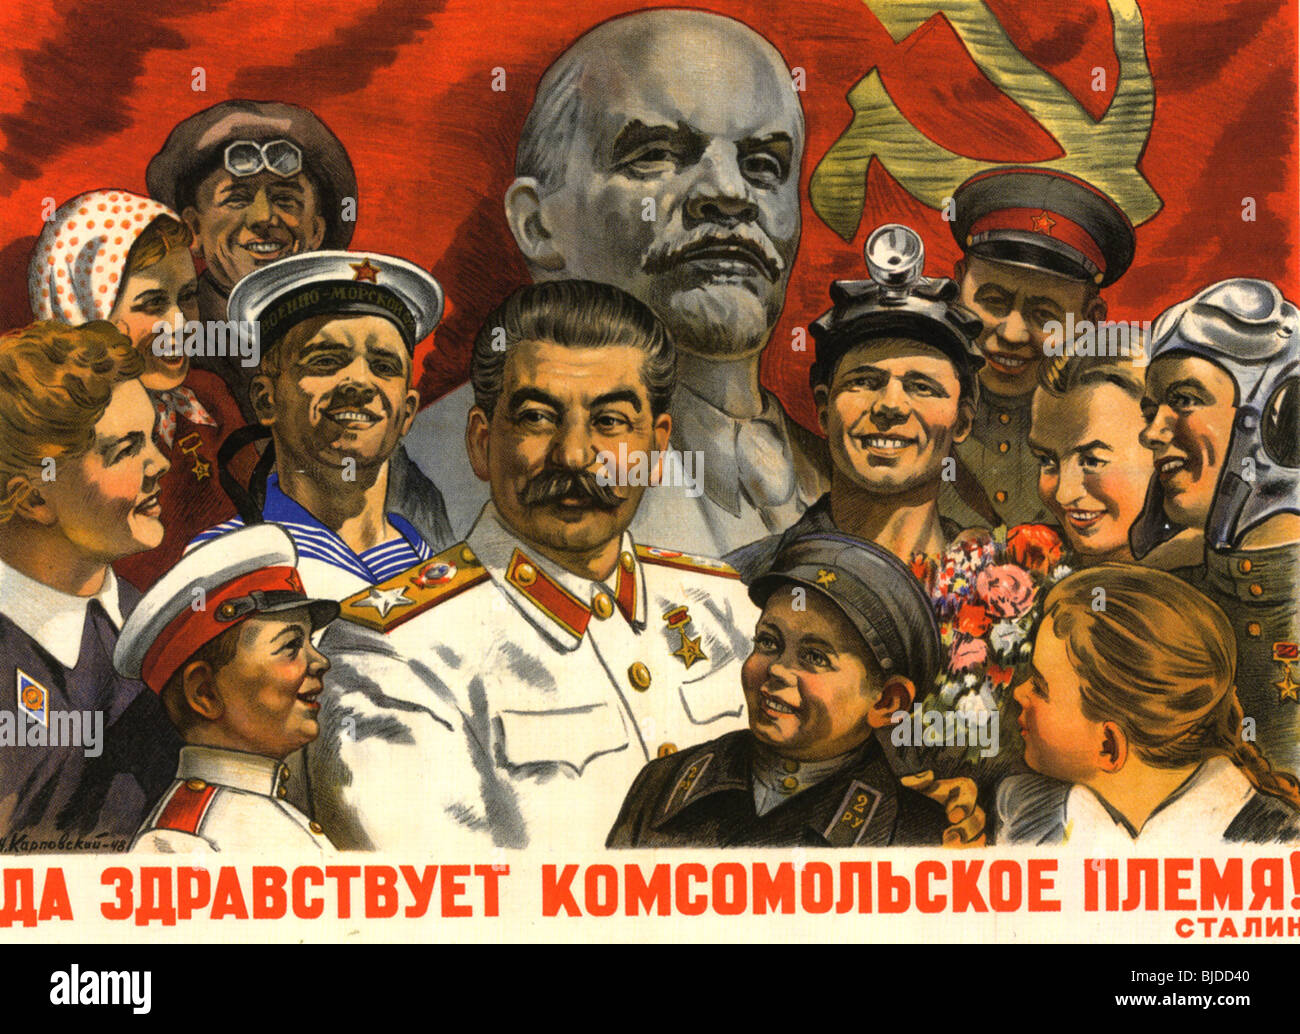 JOSEPH STALIN - 1948 USSR poster shows Stalin surrounded by admirers and the slogan 'Long Live The Komsomol - Stock Image